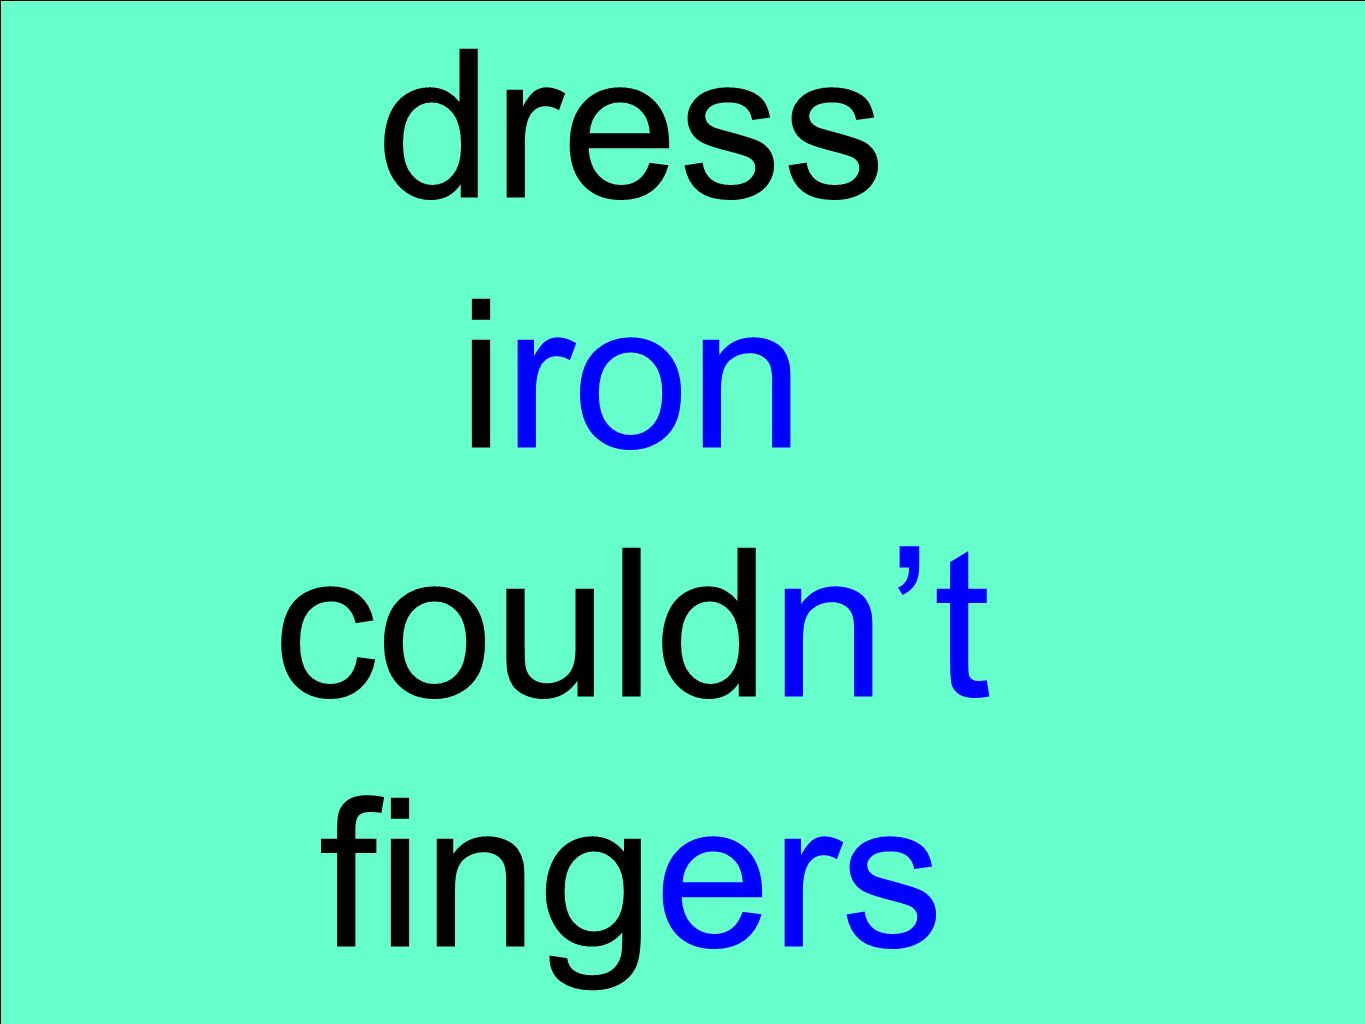 dress iron couldnt fingers